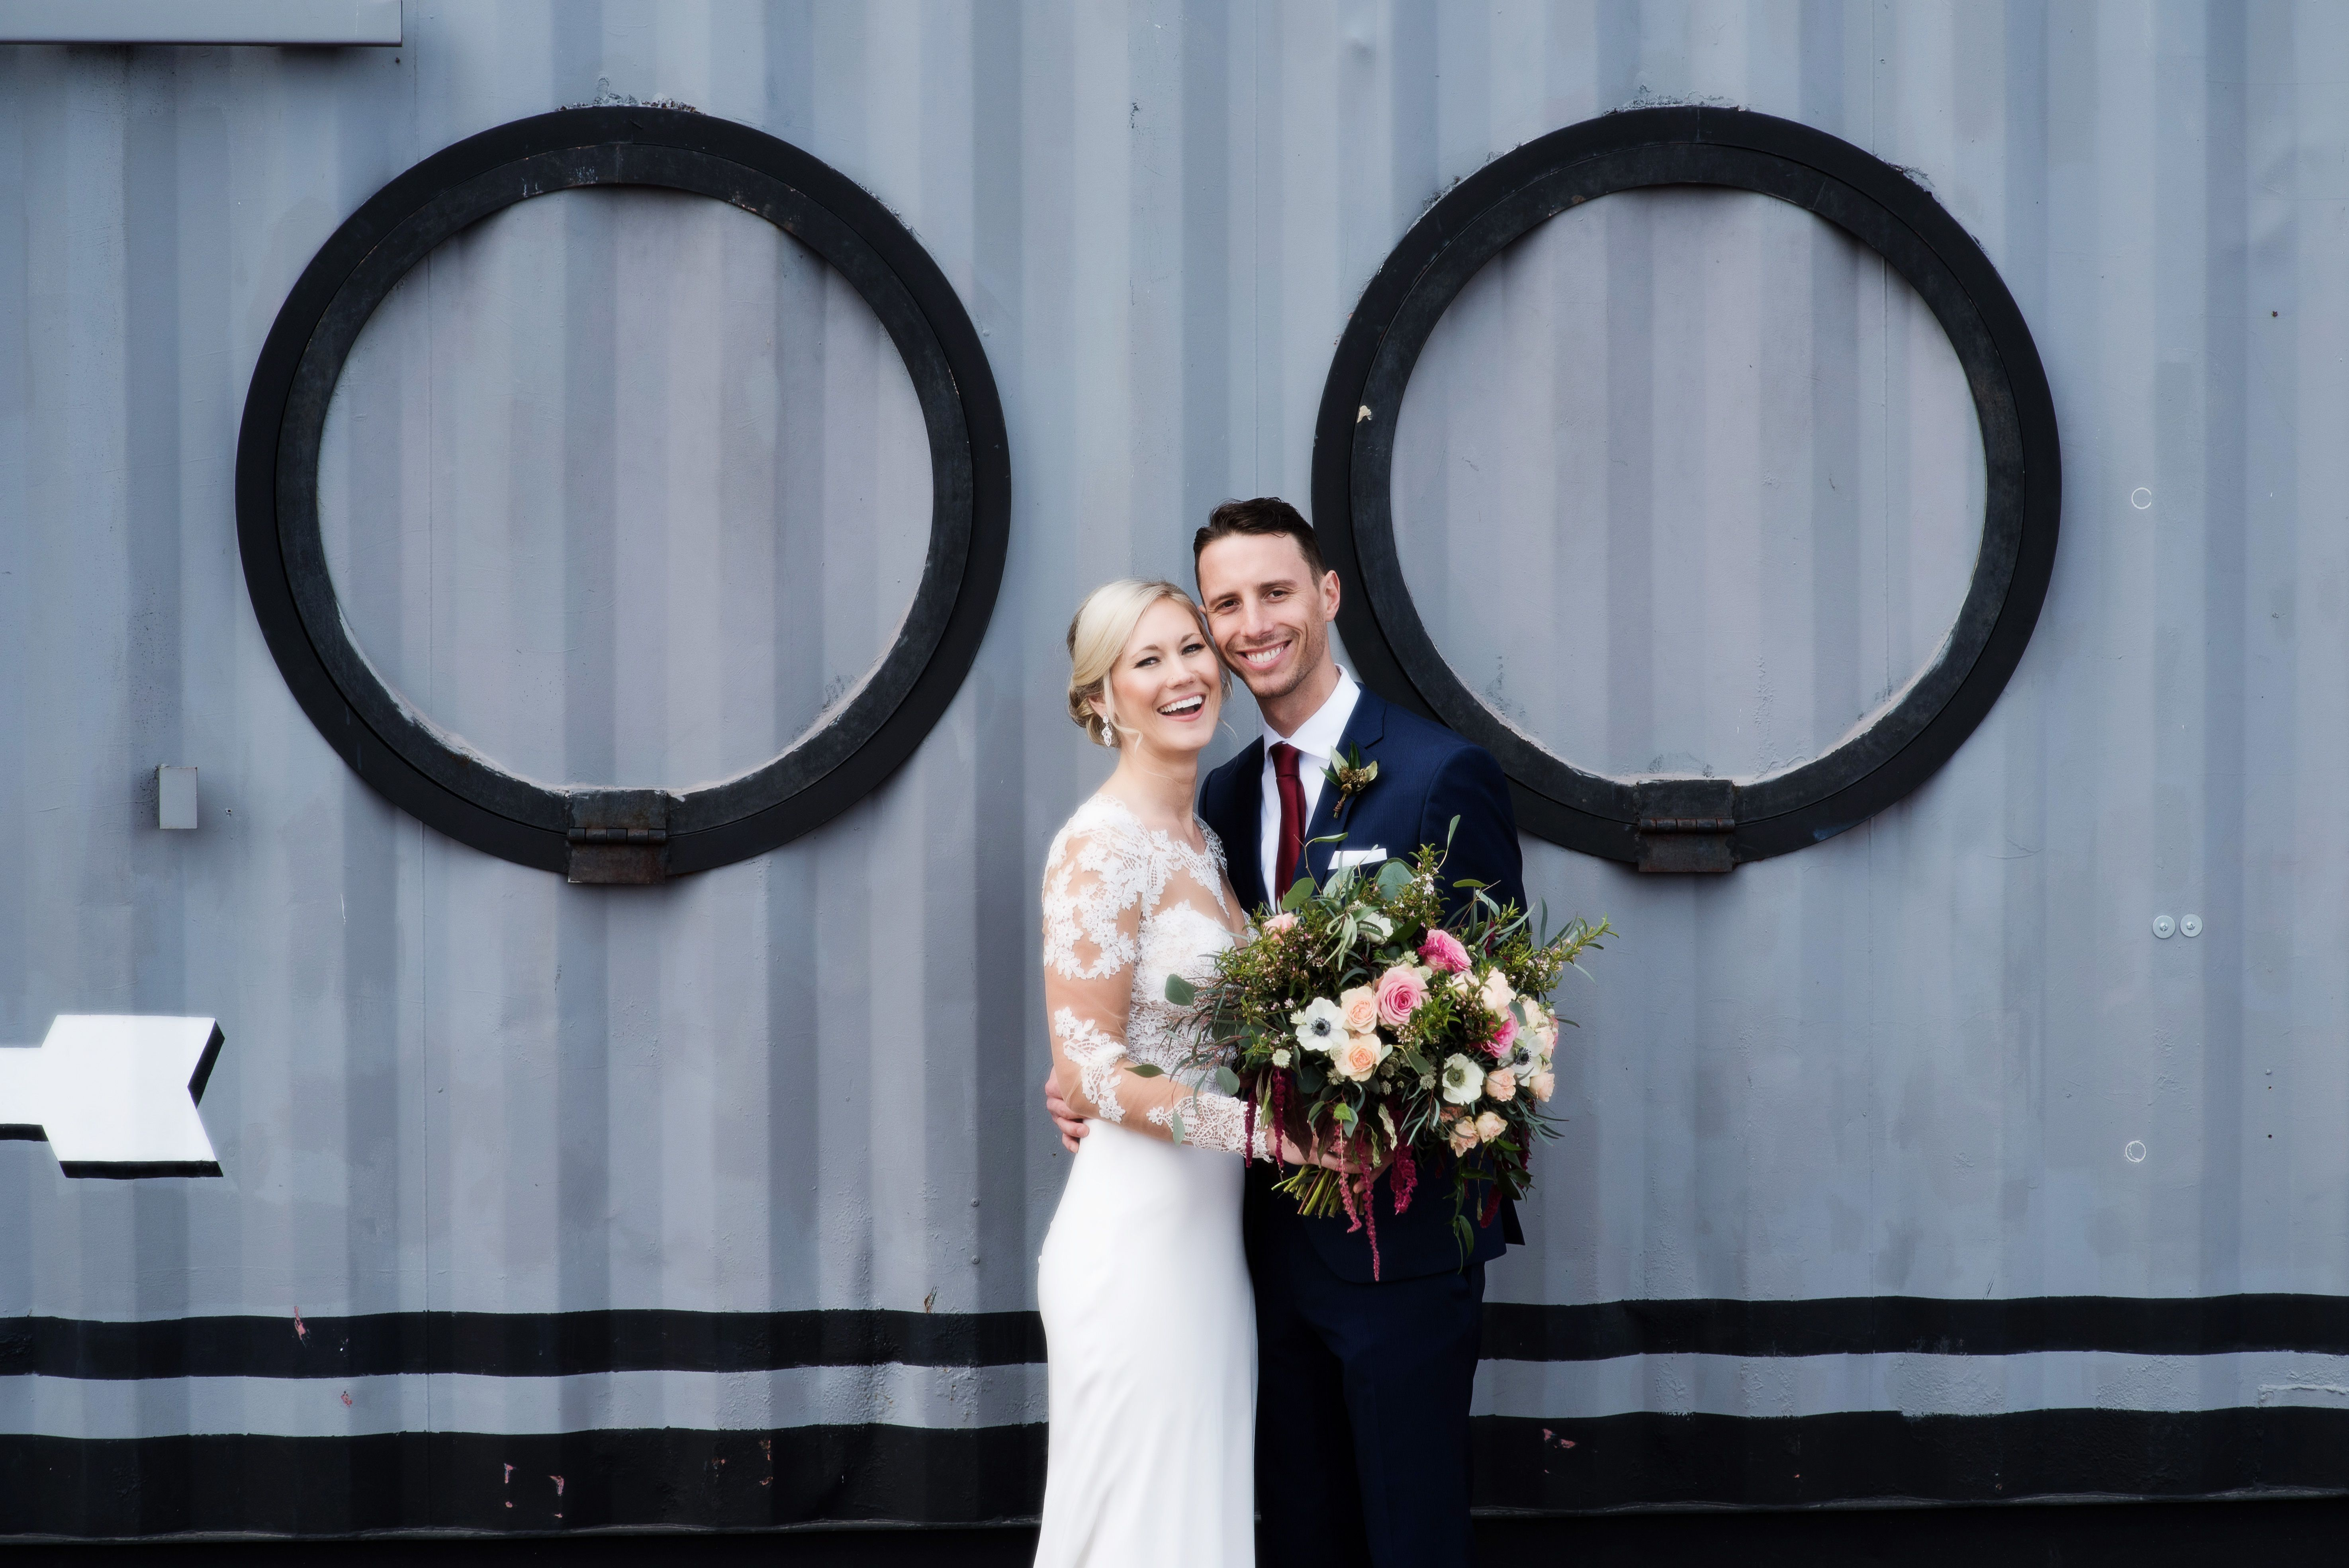 Jenna McGivney and Daniel Garrison share a smile just after seeing each other for the first time on their wedding day.